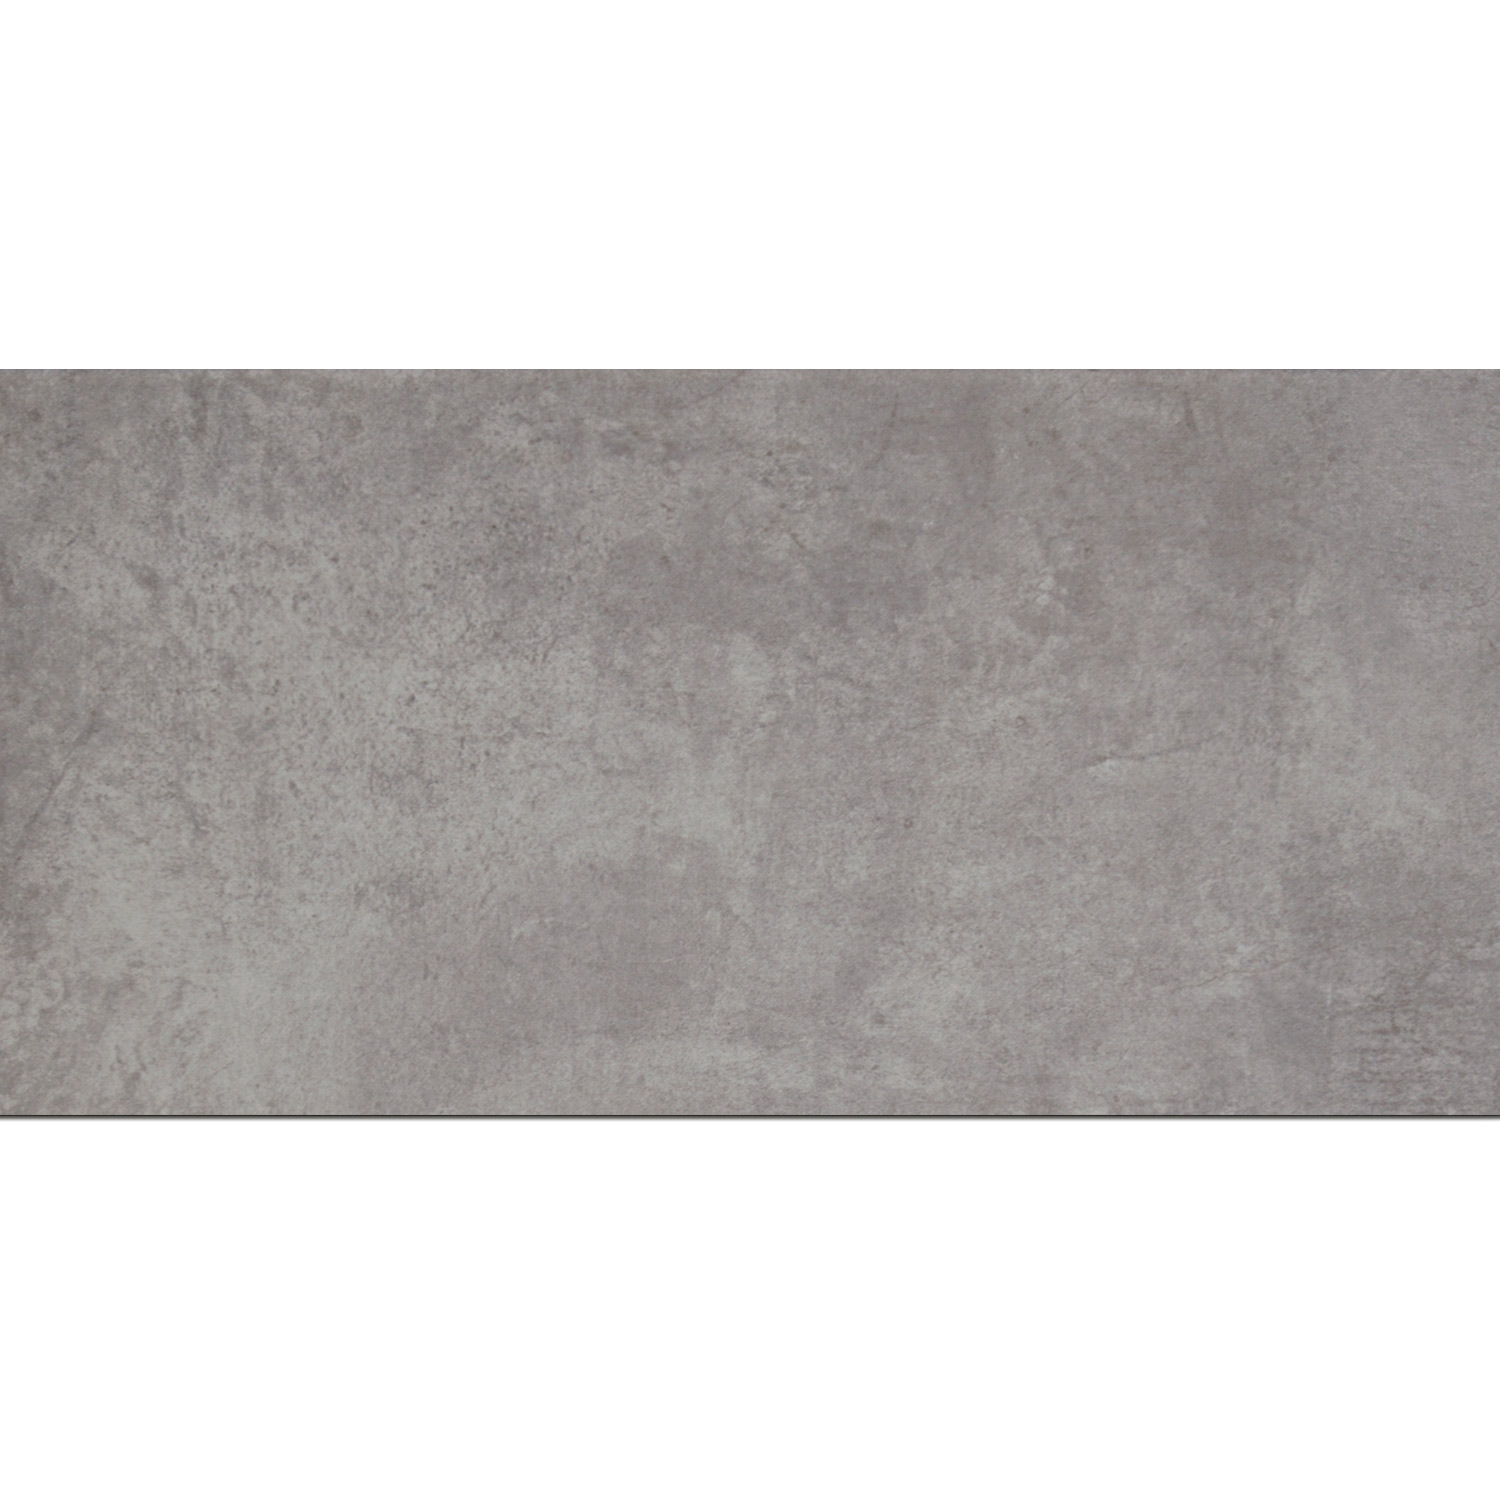 Floor Tiles Panorama Grey Beige 30x60cm